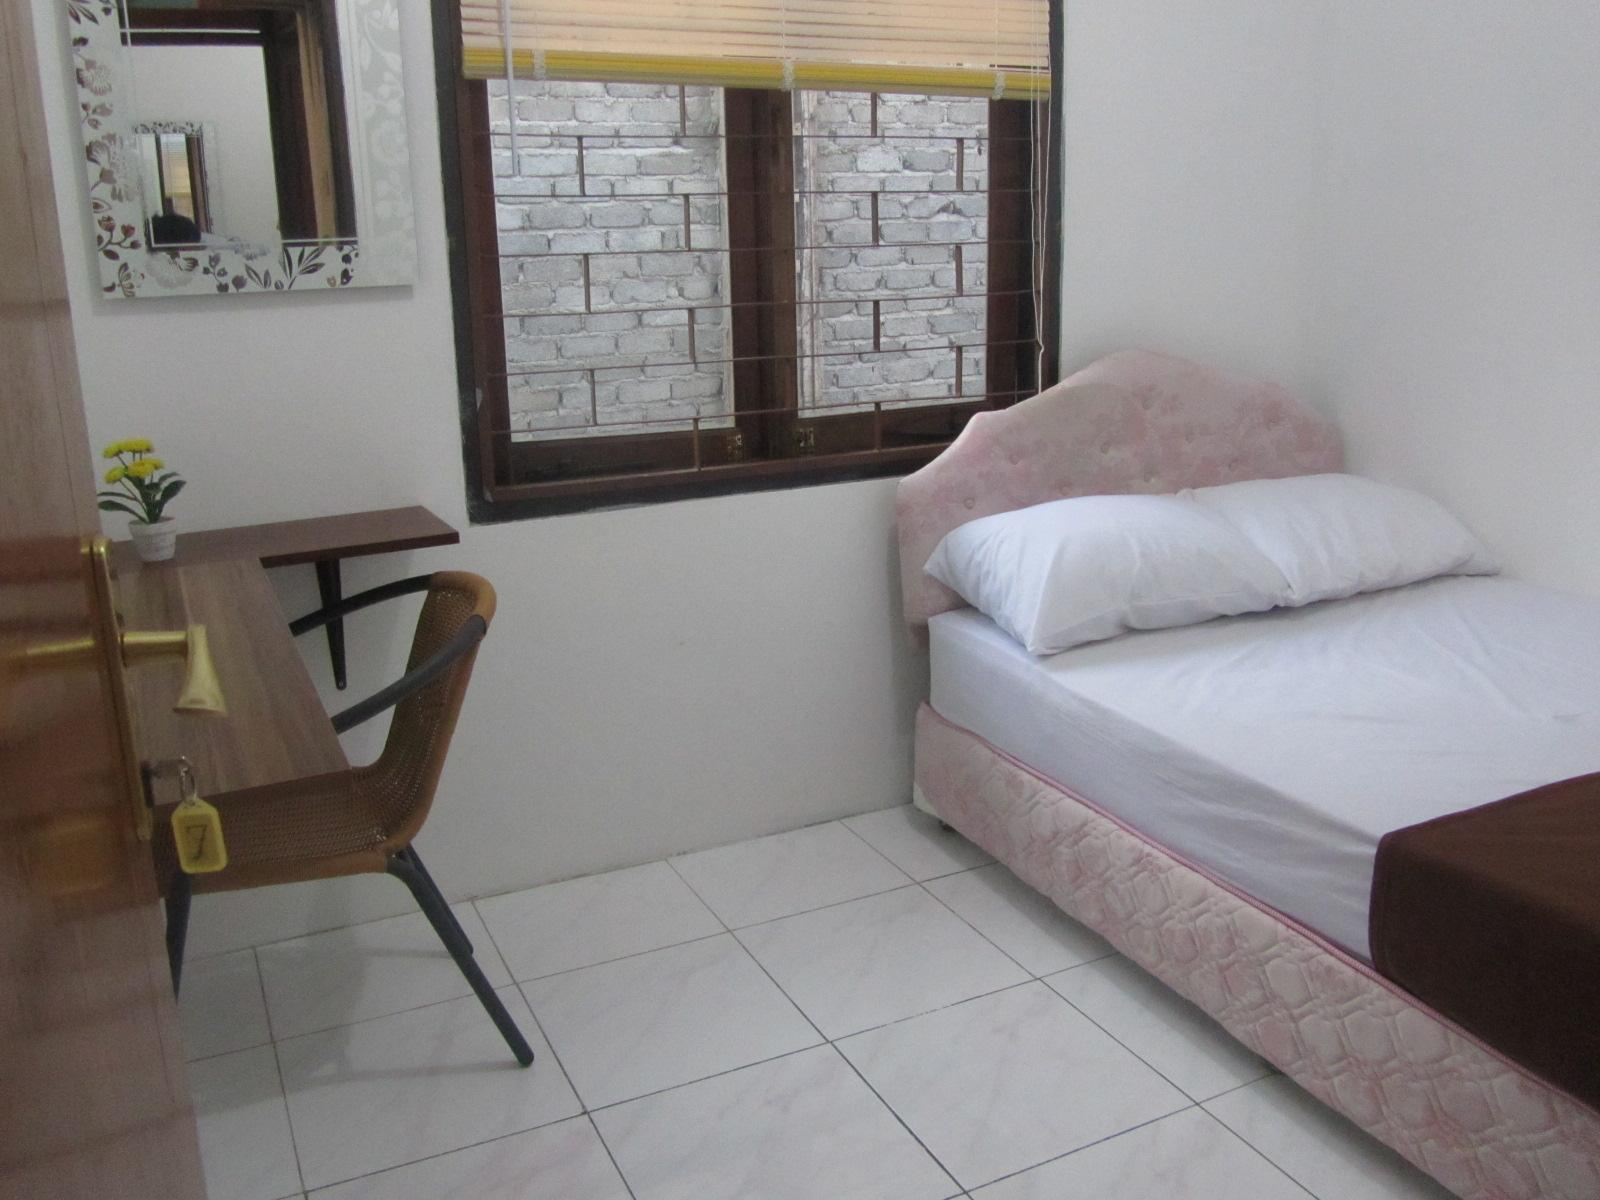 cama Queen-size com ventoinha e casa de banho partilhada (Queen Bed with Fan & Shared Bathroom)